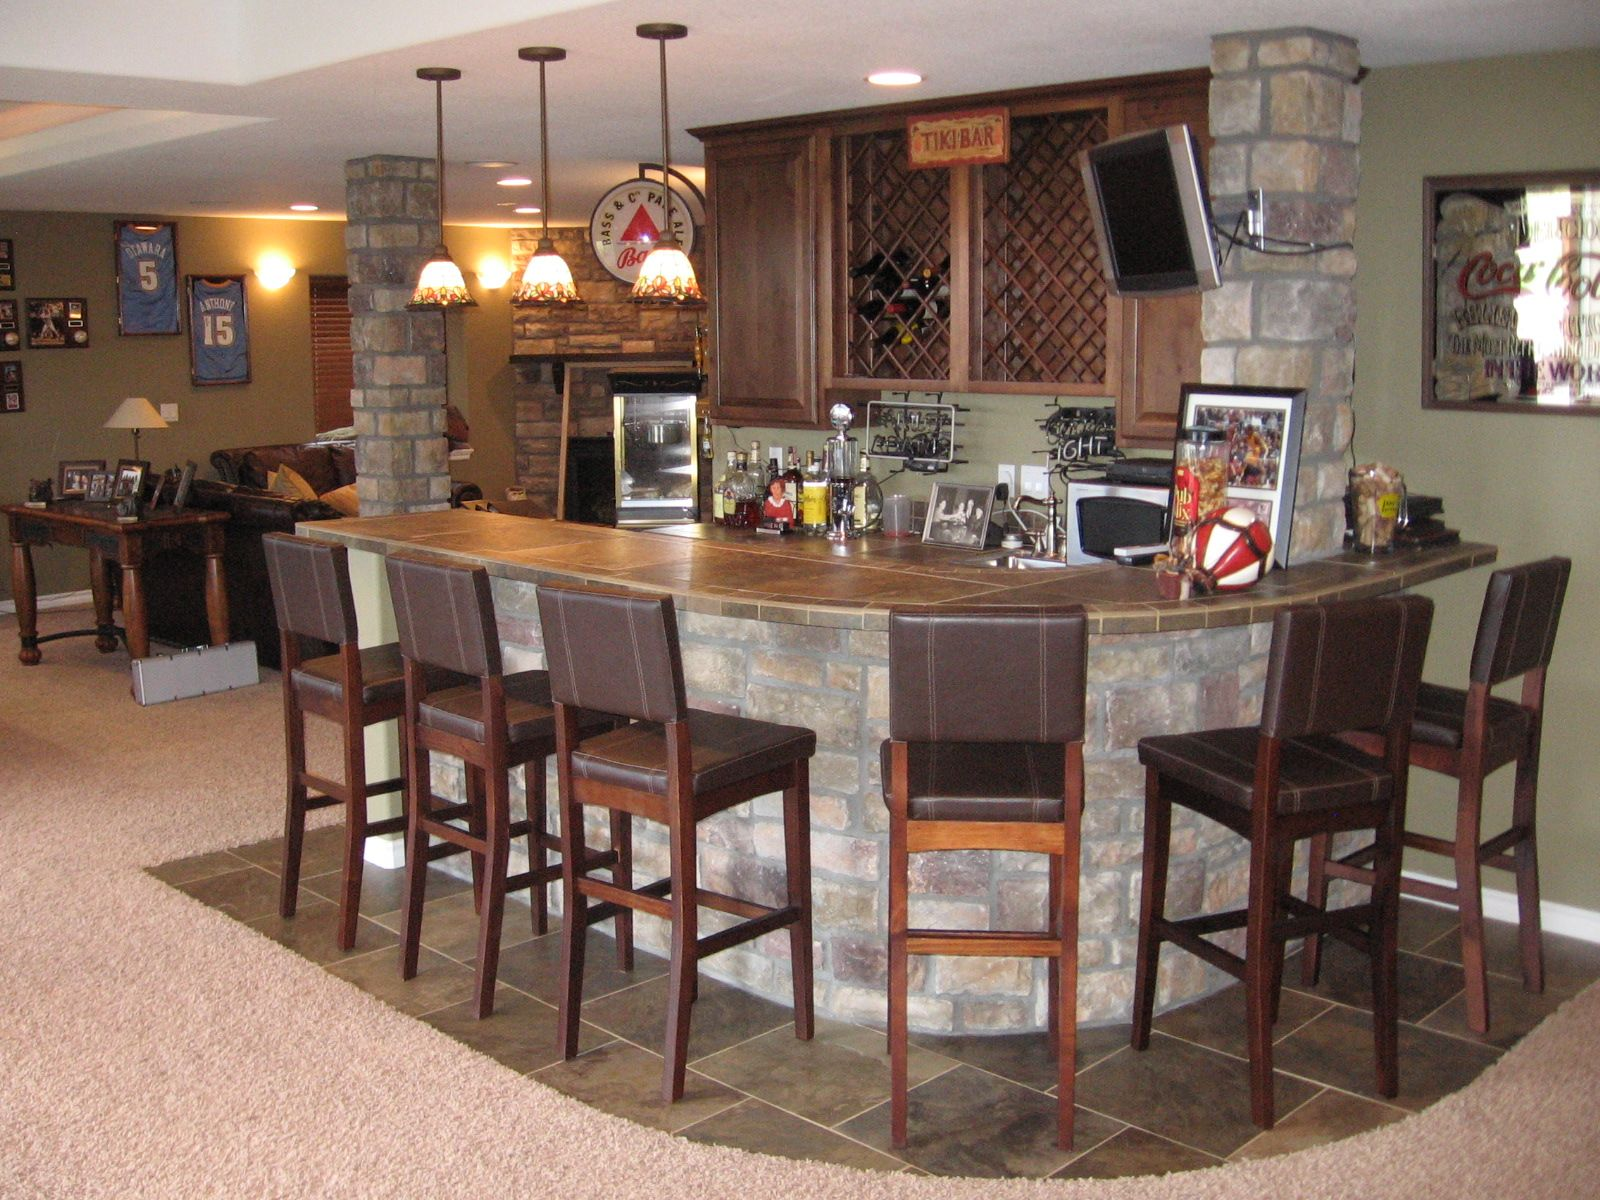 Awesome bar in basement design ideas with modular curved kitchen home remodeling - Awesome kitchen from stone more cheerful ...